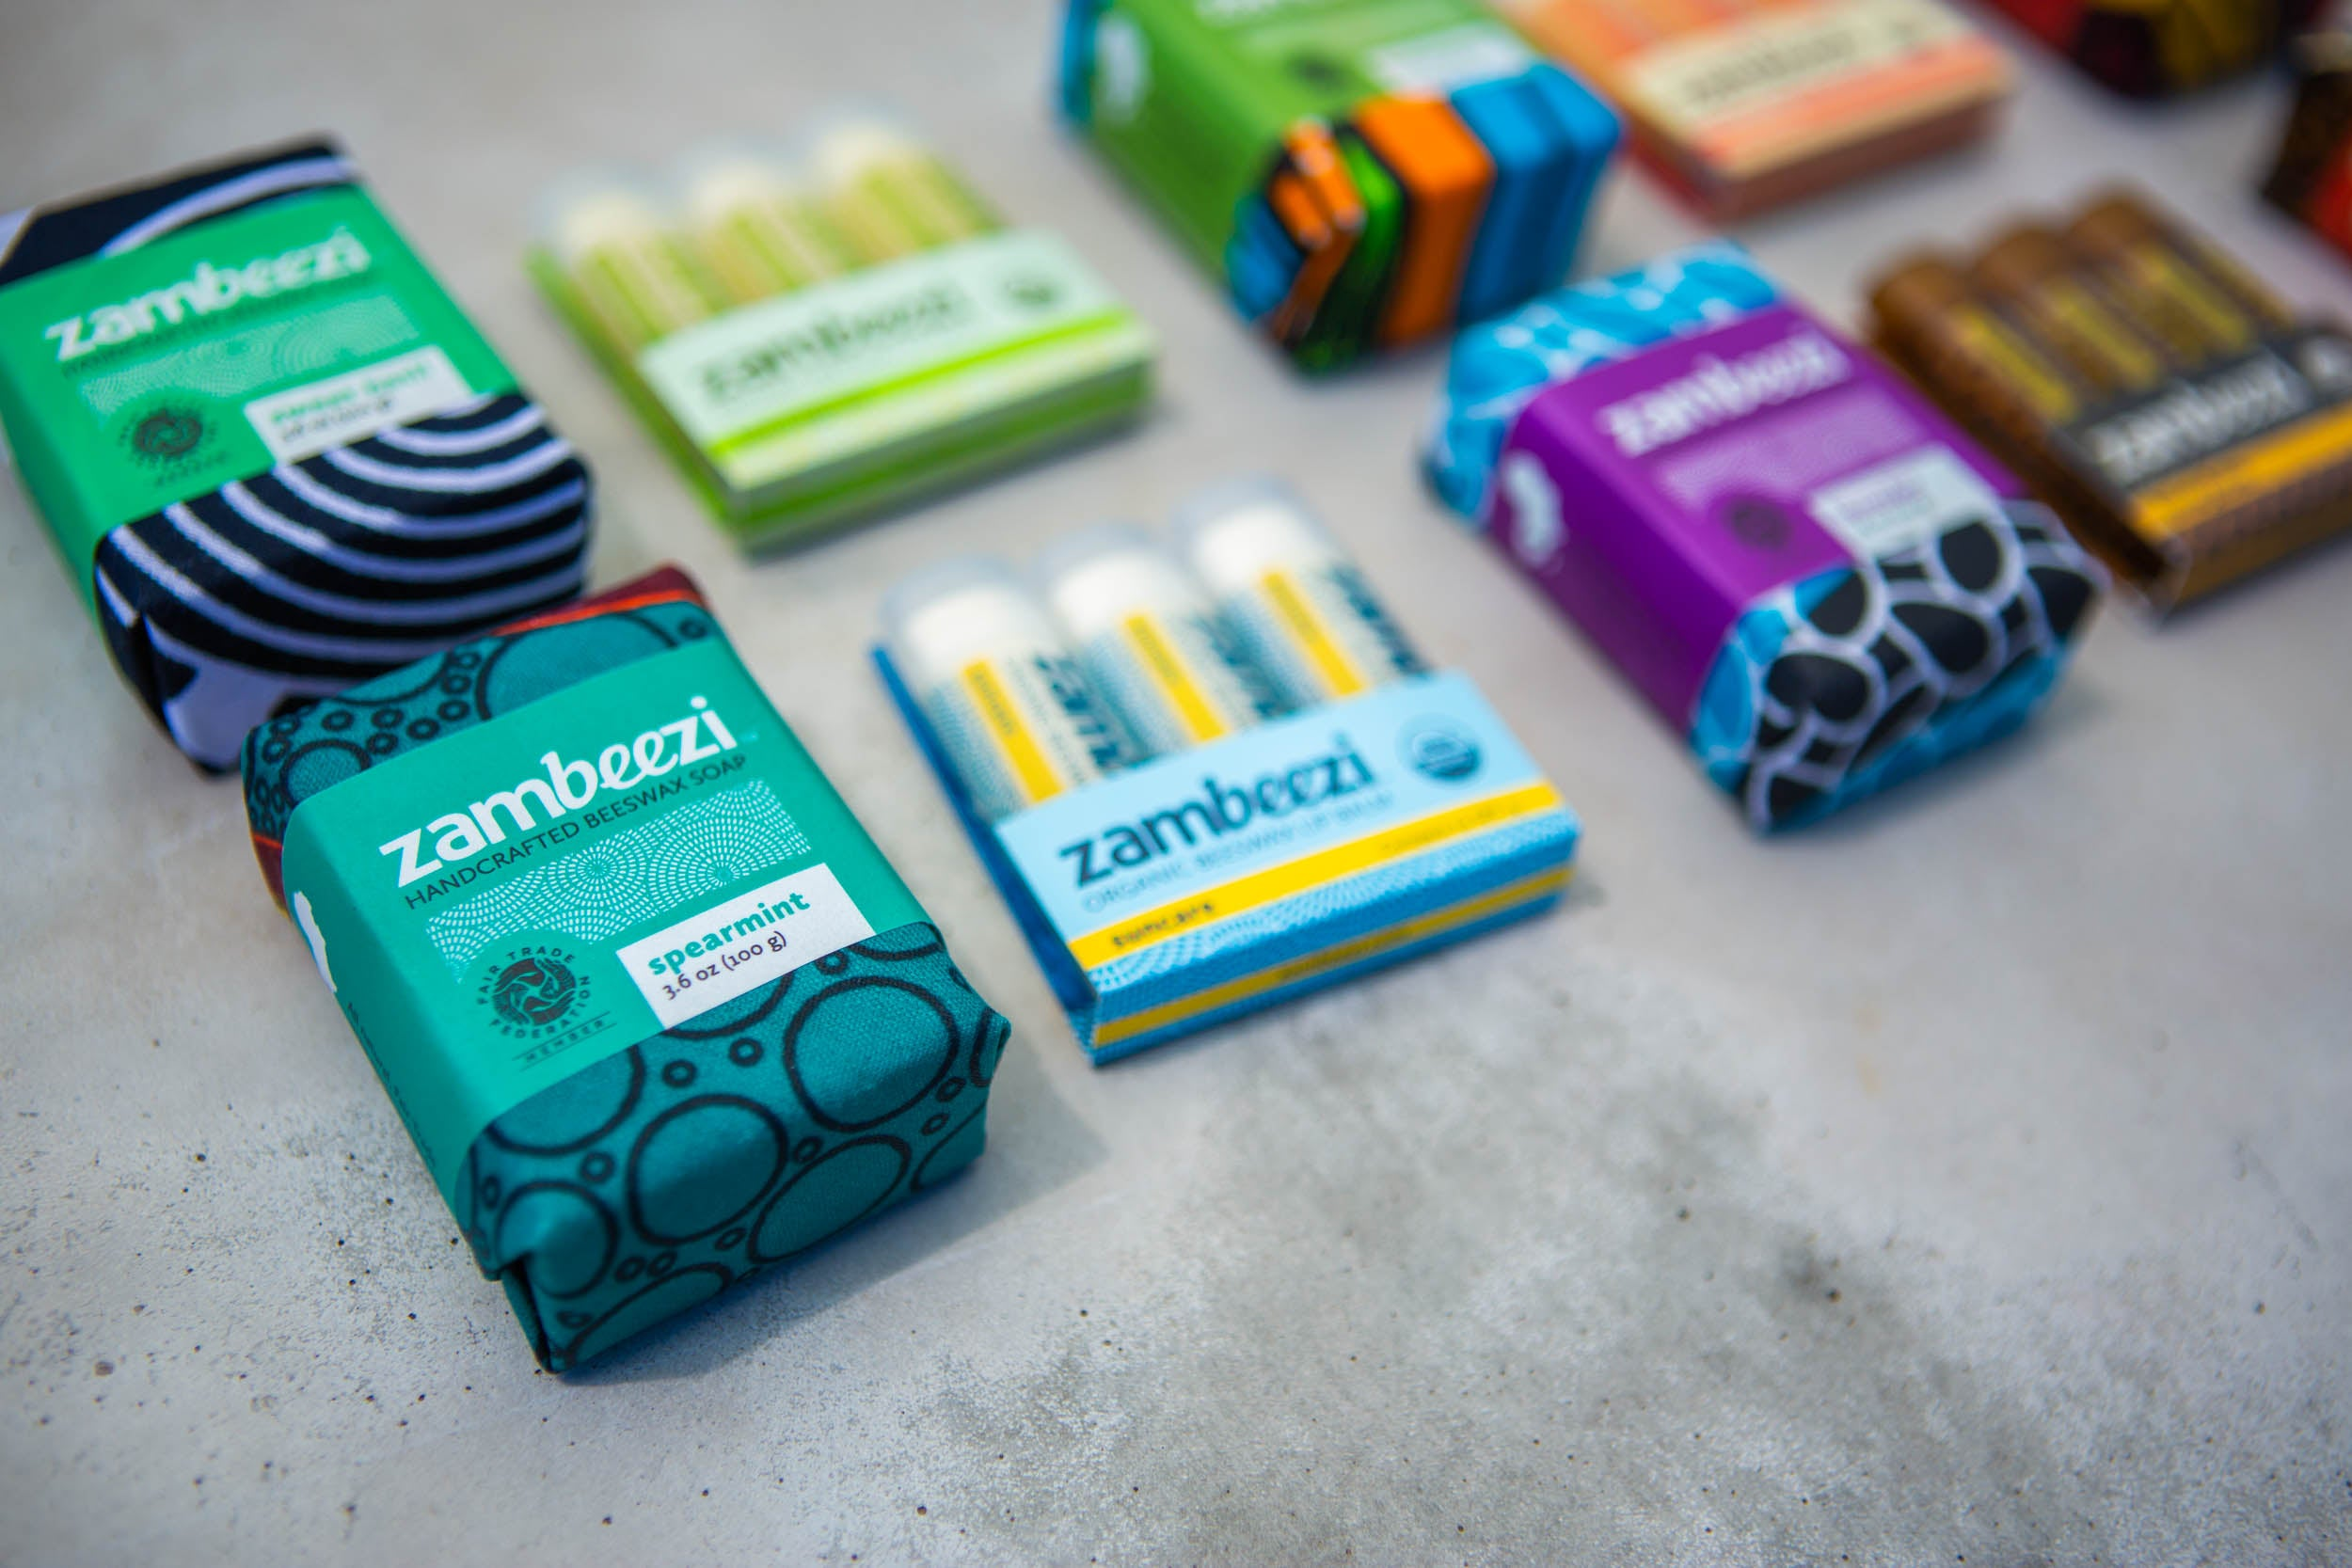 Zambeezi - our collection of organic and fair trade body care - ethical lip balm and soap